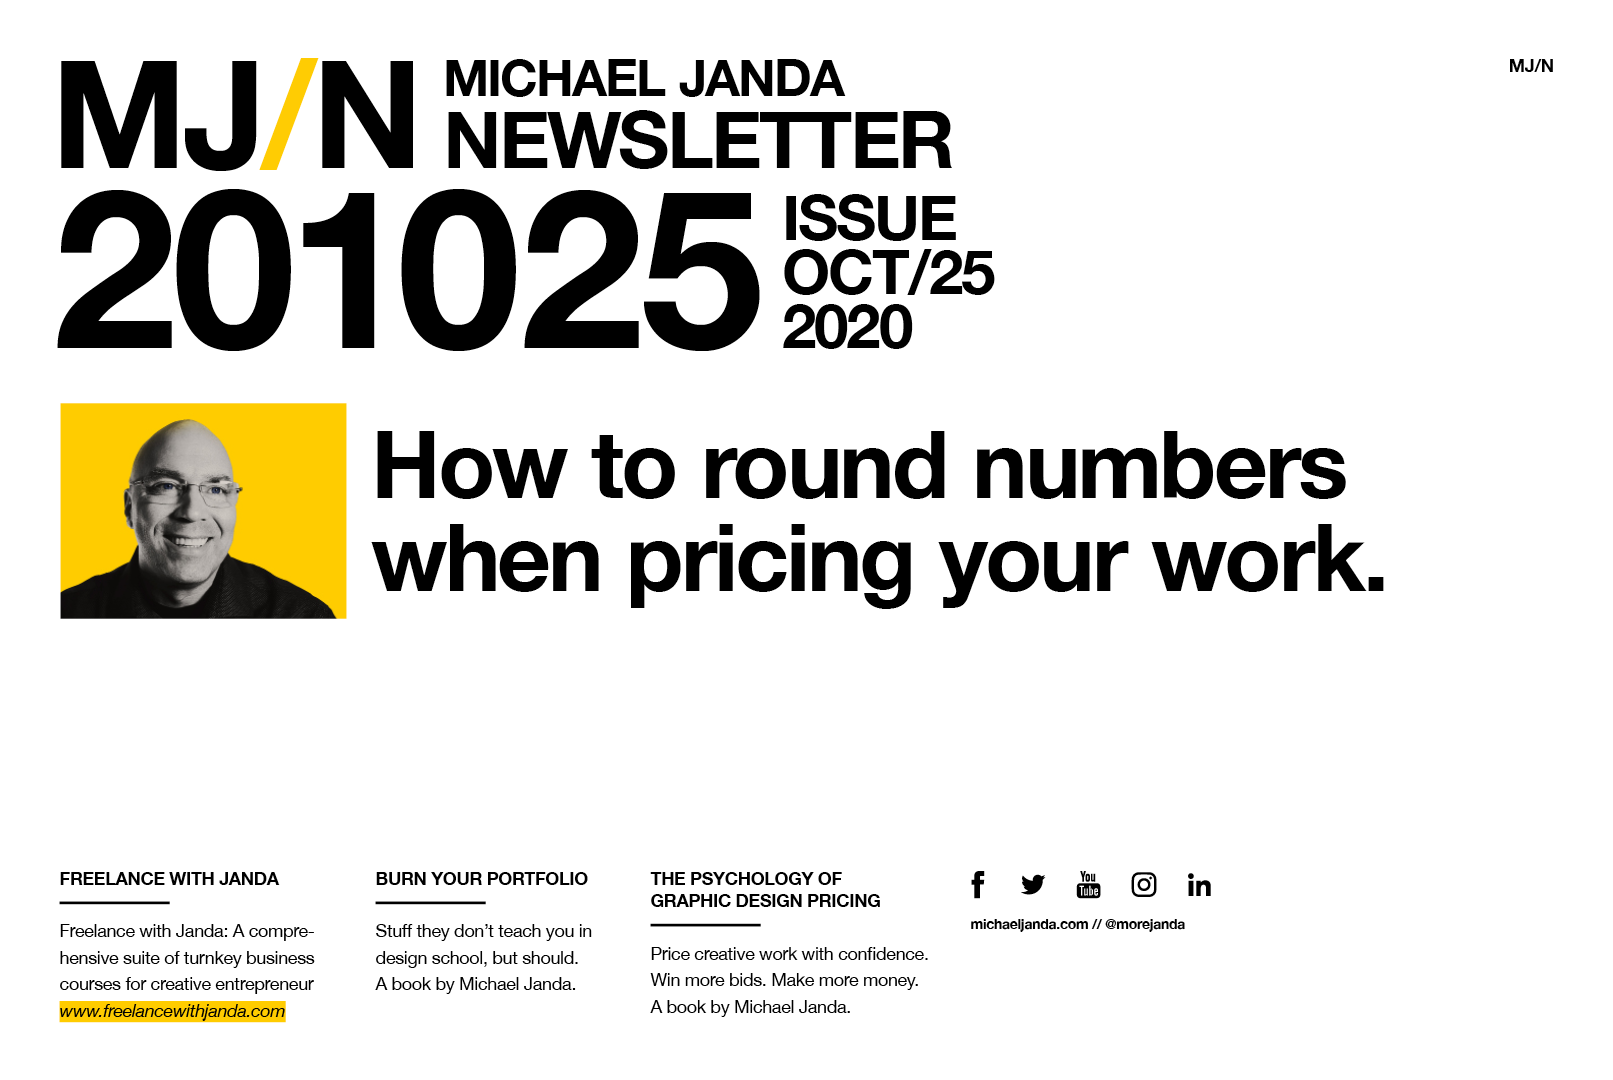 How to round numbers when pricing your work.